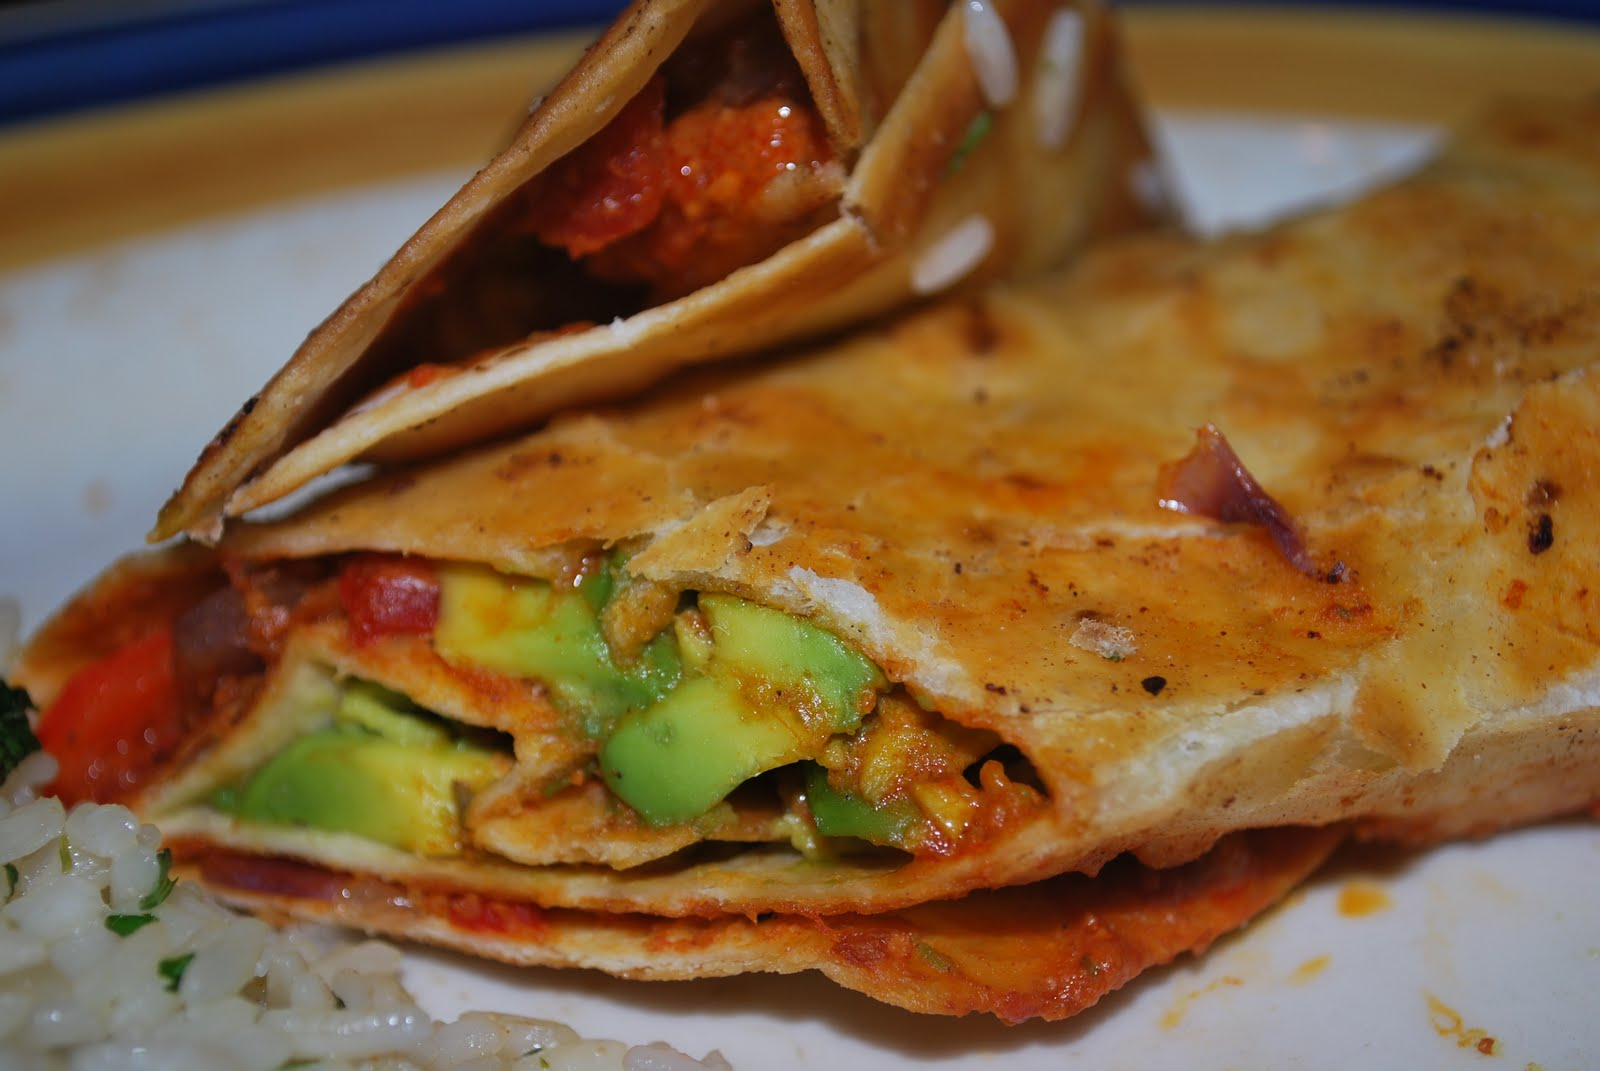 These normally come with cheese, but it's easy to omit. Avocados are ...